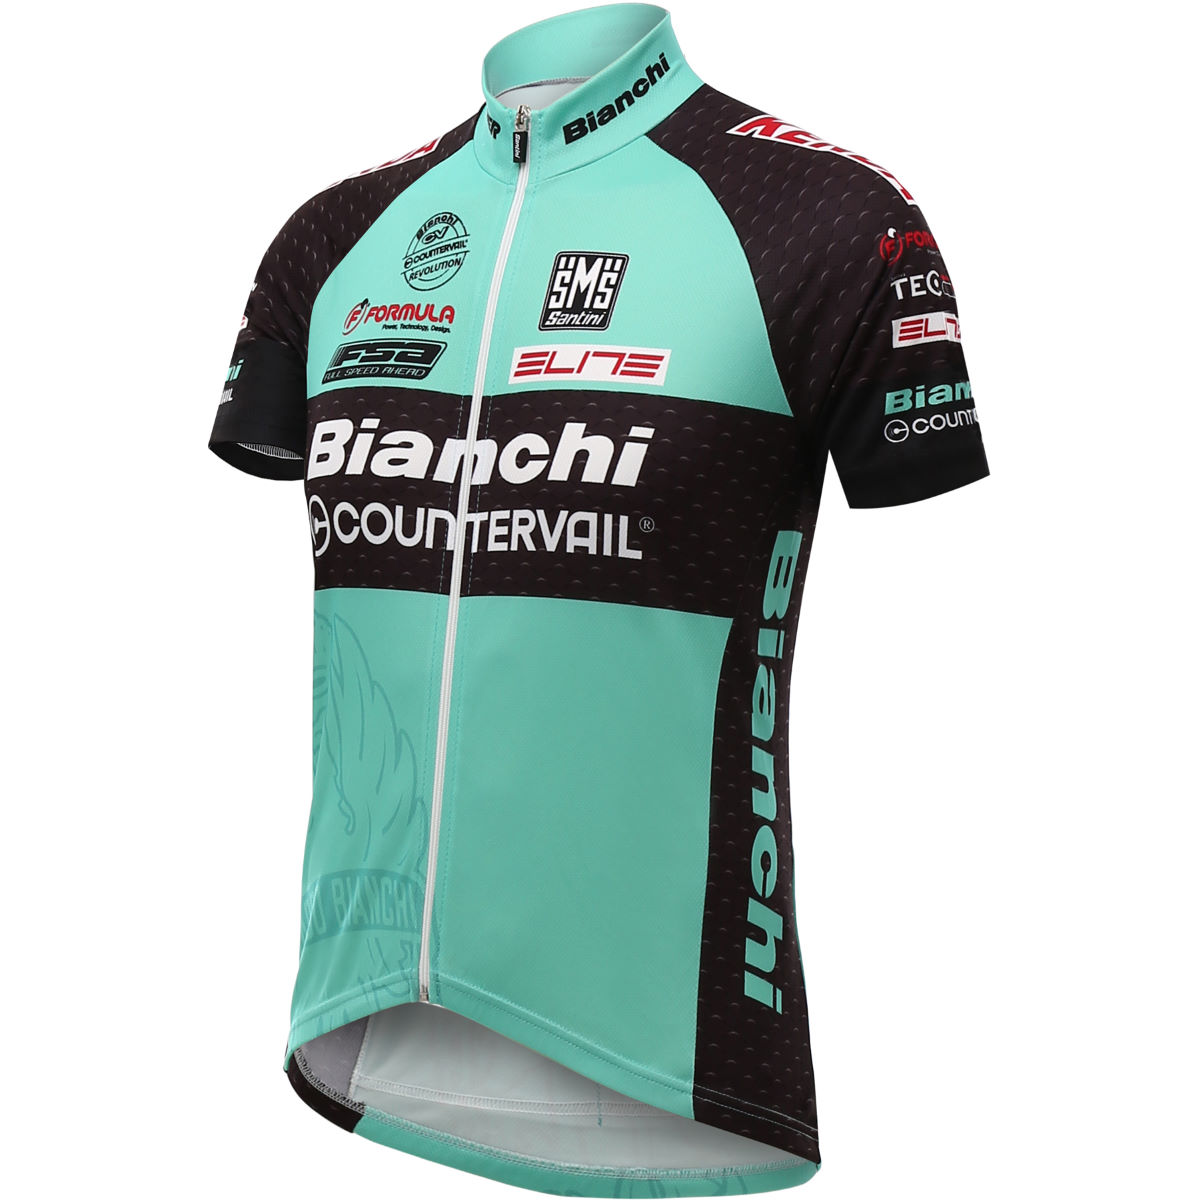 Santini-TX-Active-Bianchi-Jersey-2016-Short-Sleeve-Jerseys-Blue-SS16-CAS2520S Micros Low Cost